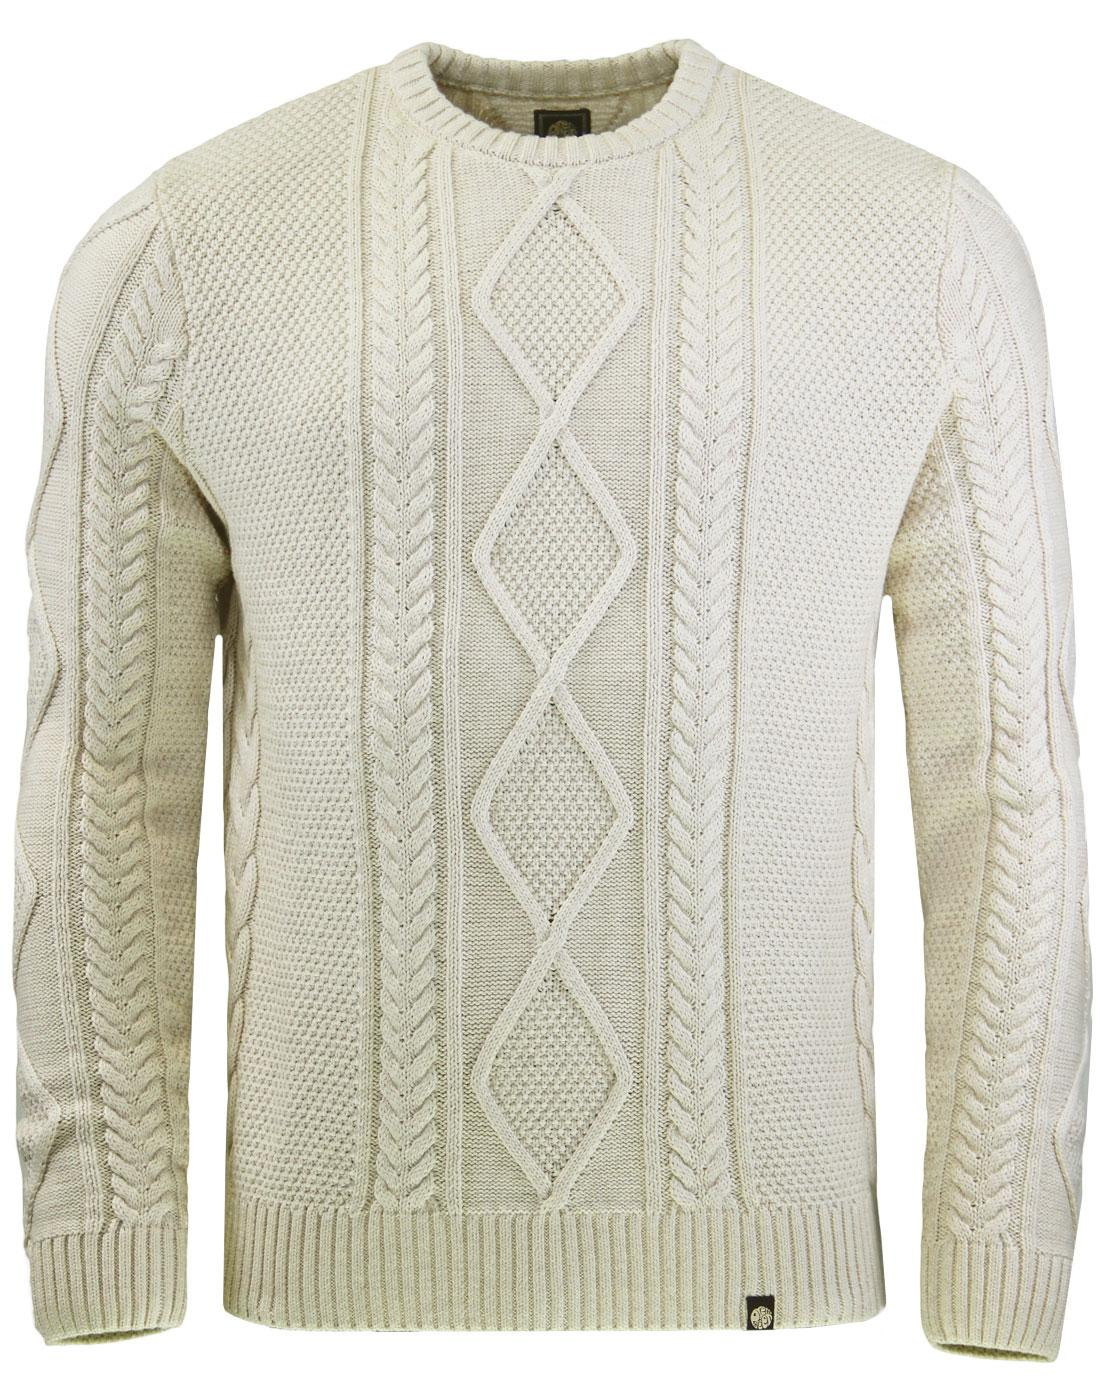 Starboard PRETTY GREEN Cable Knit Fisherman Jumper